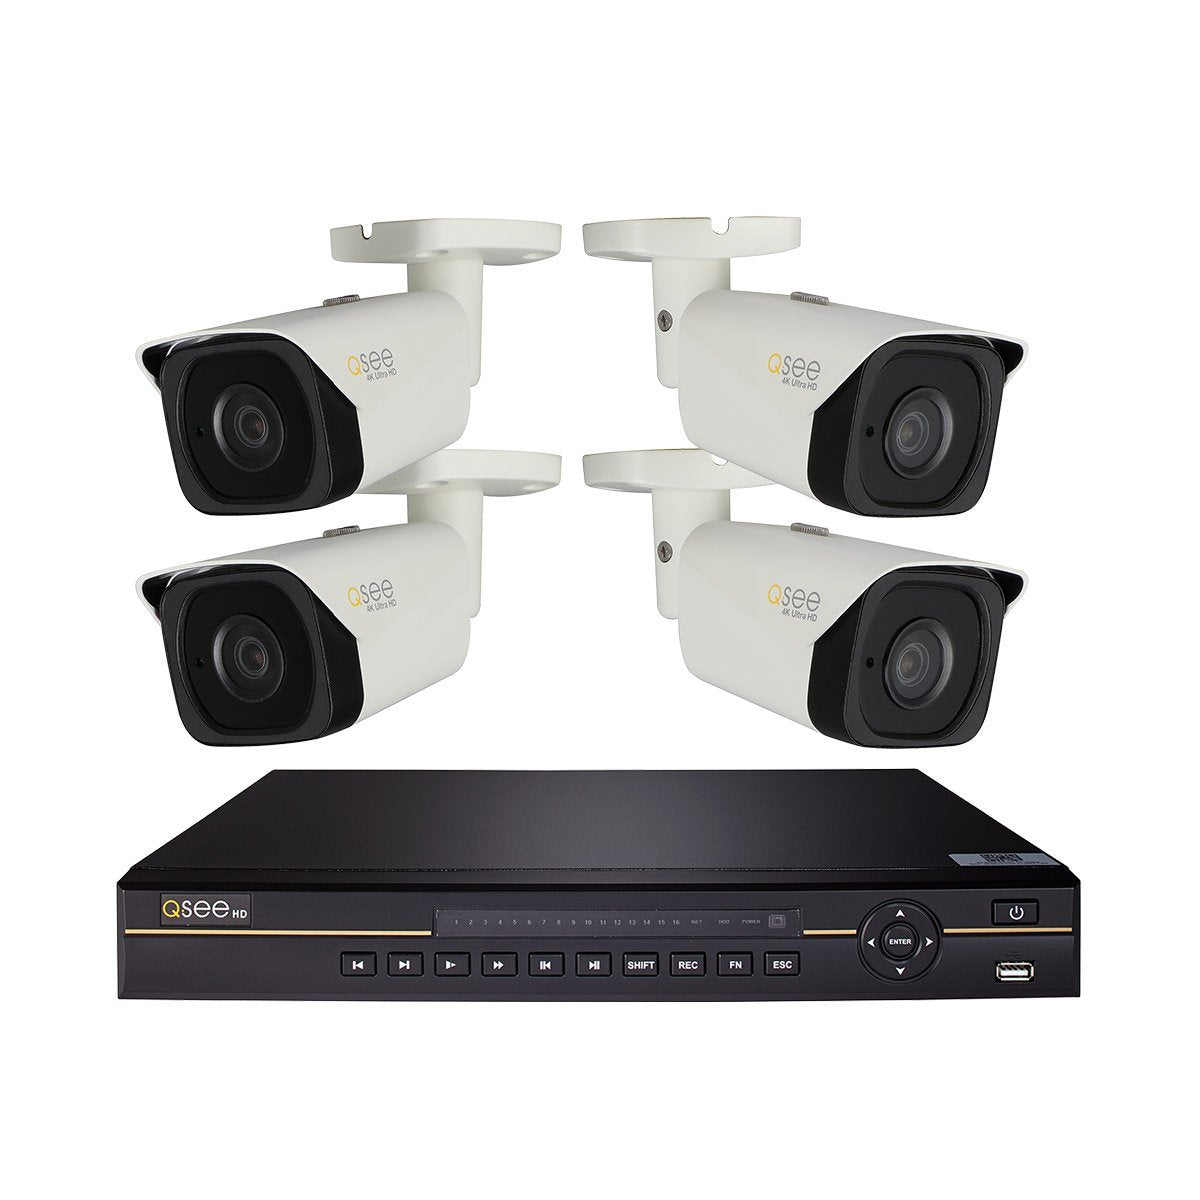 Q-See IP HD KIT 8-Channel 4K Ultra HD IP Security System with (4) 4K IP HD Bullet Cameras (QCK81-4ET-4)